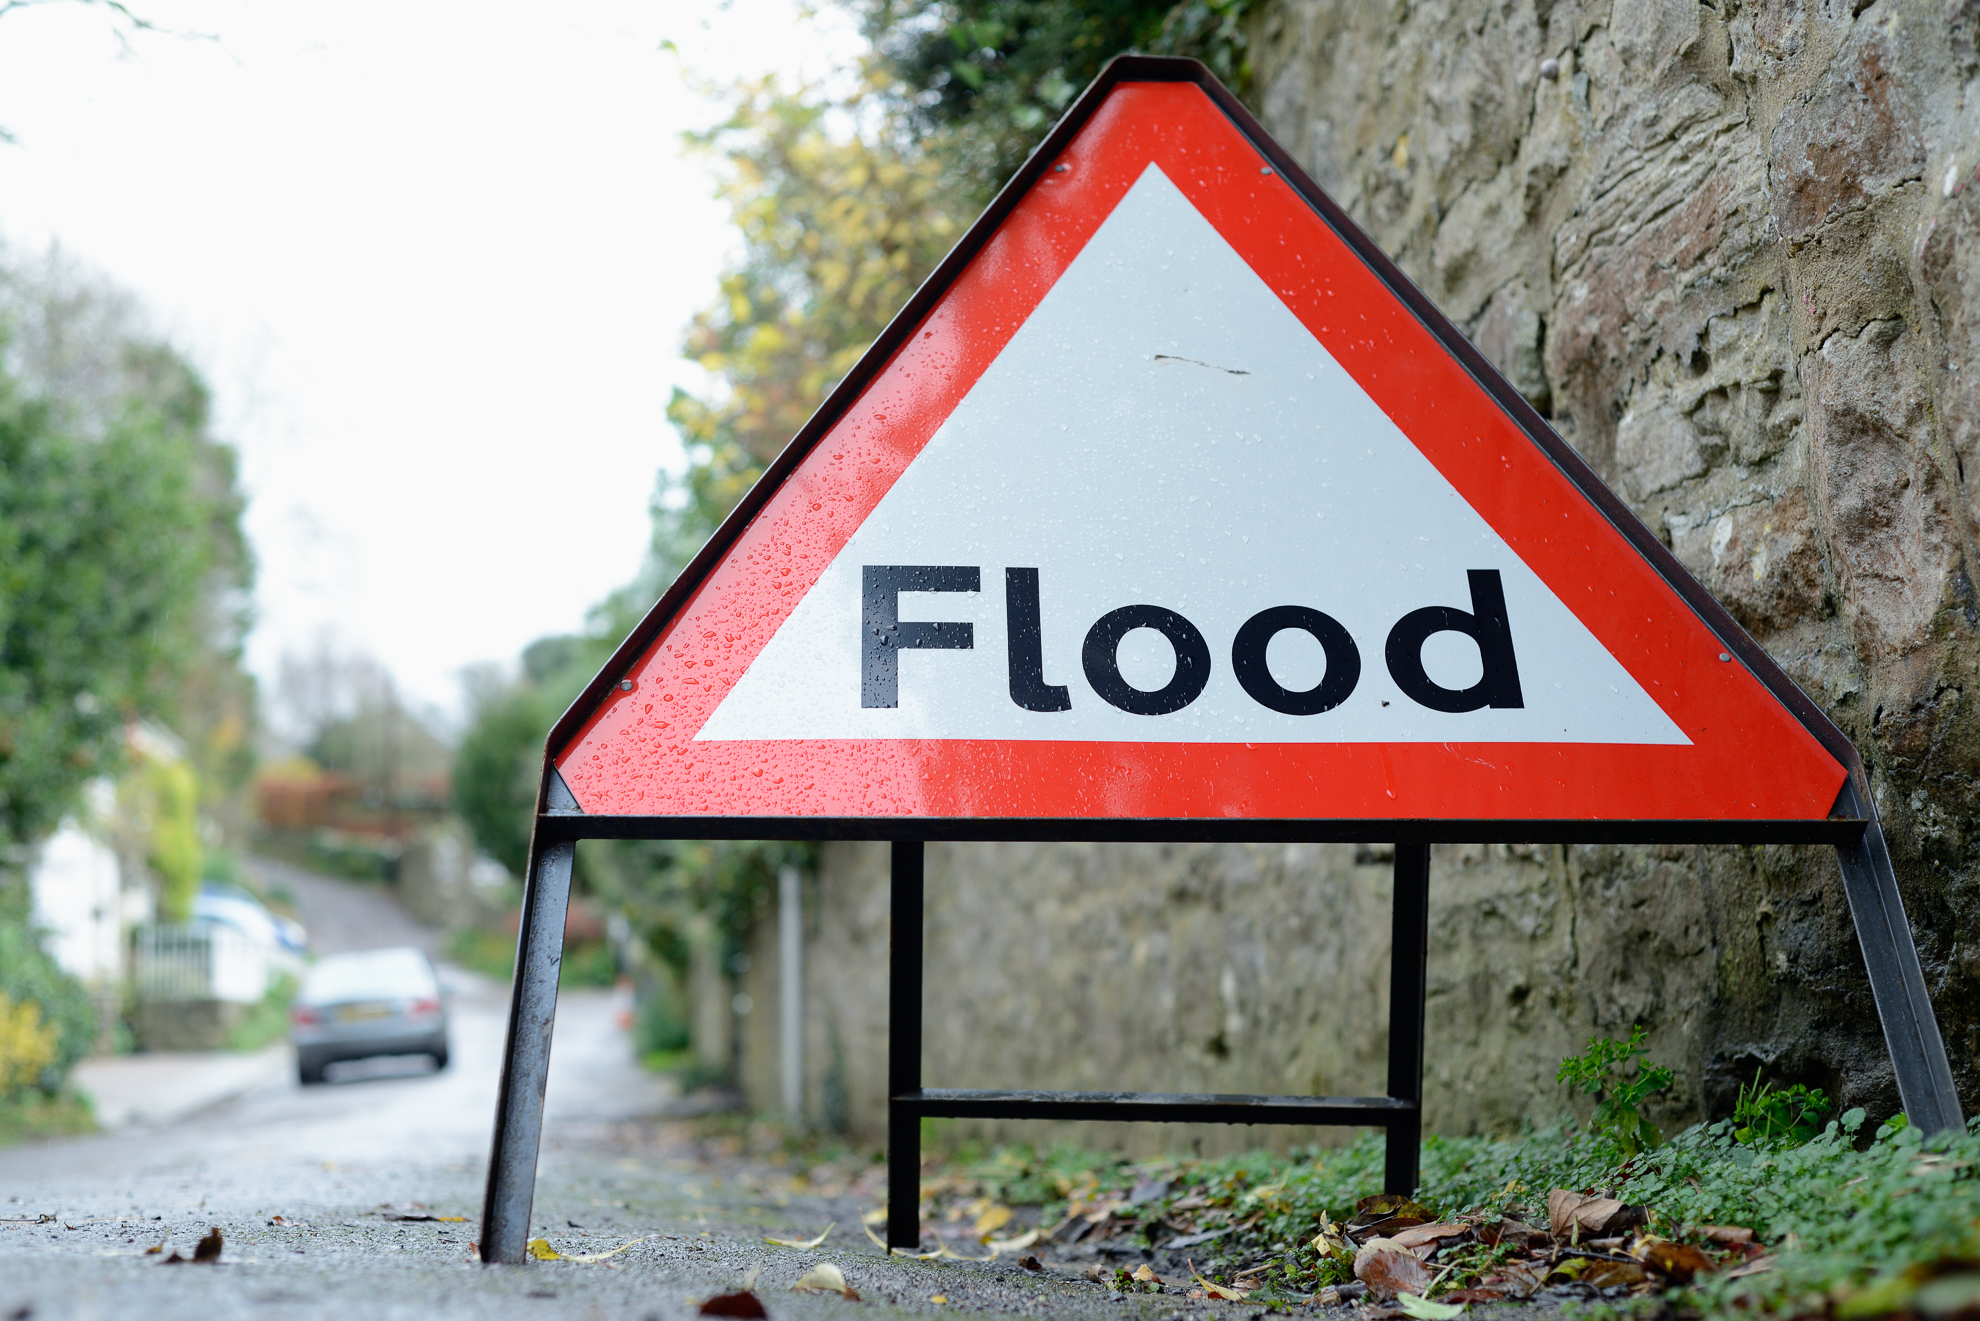 flood risk warning sign in rural road